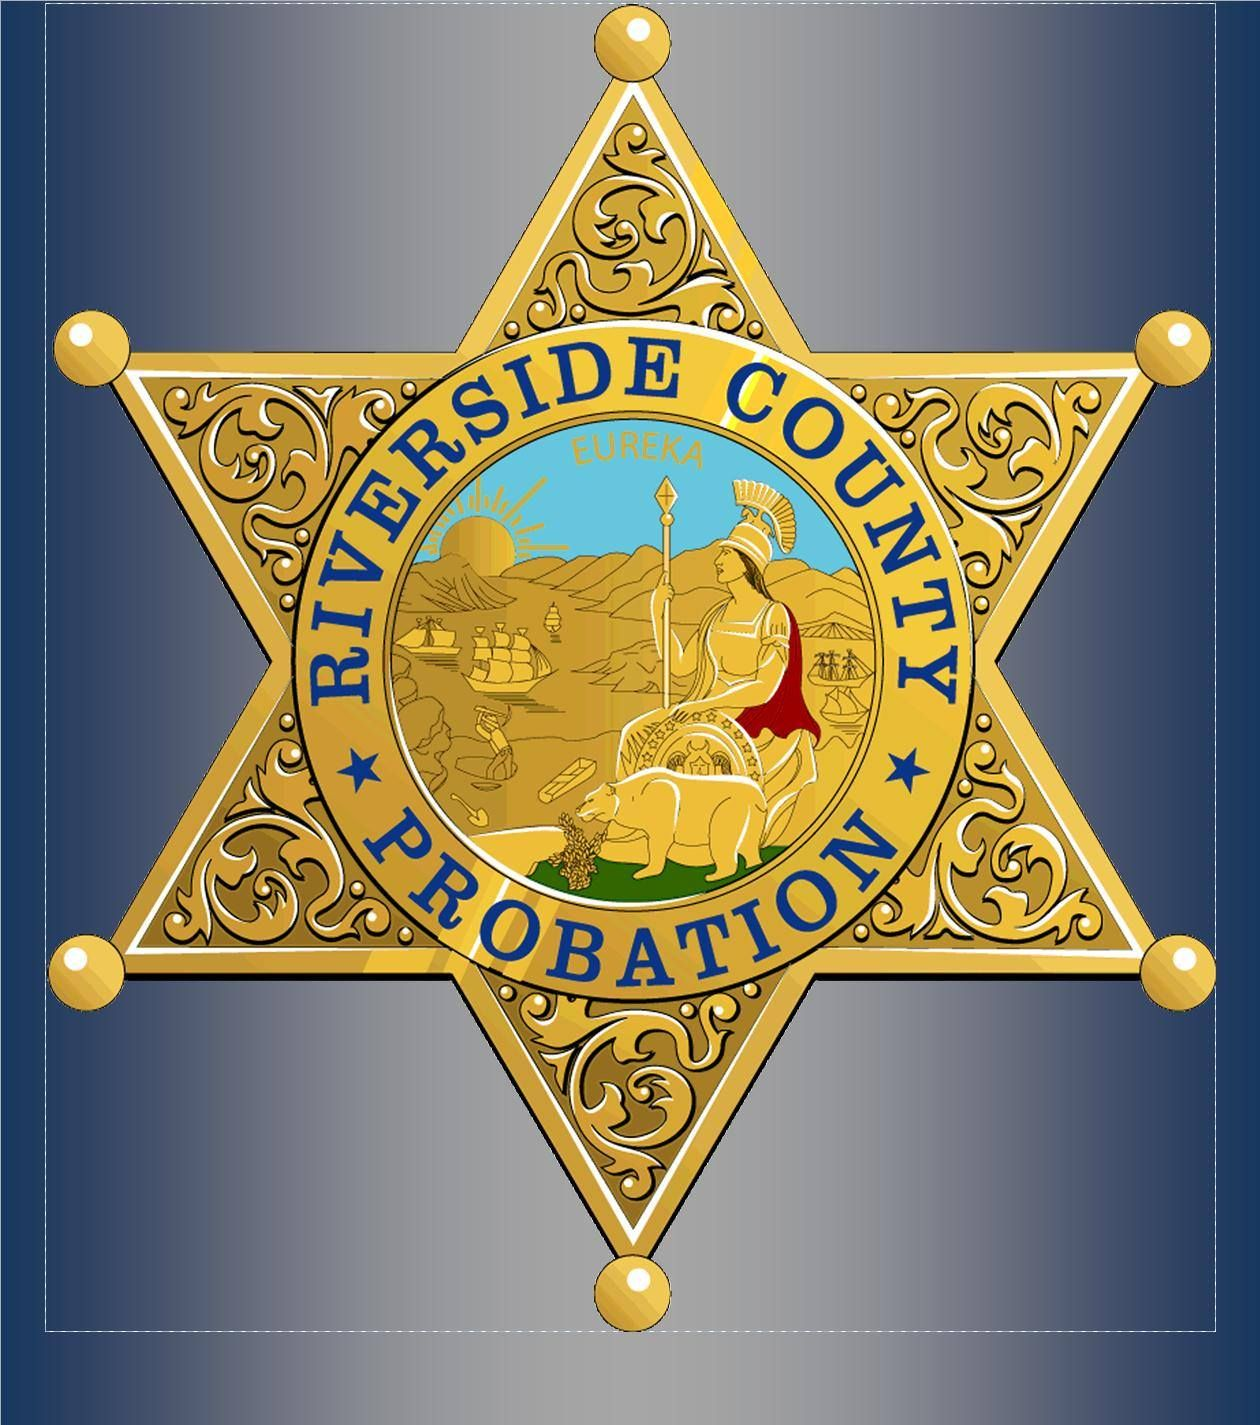 Looking for a career in law enforcement? The Department is